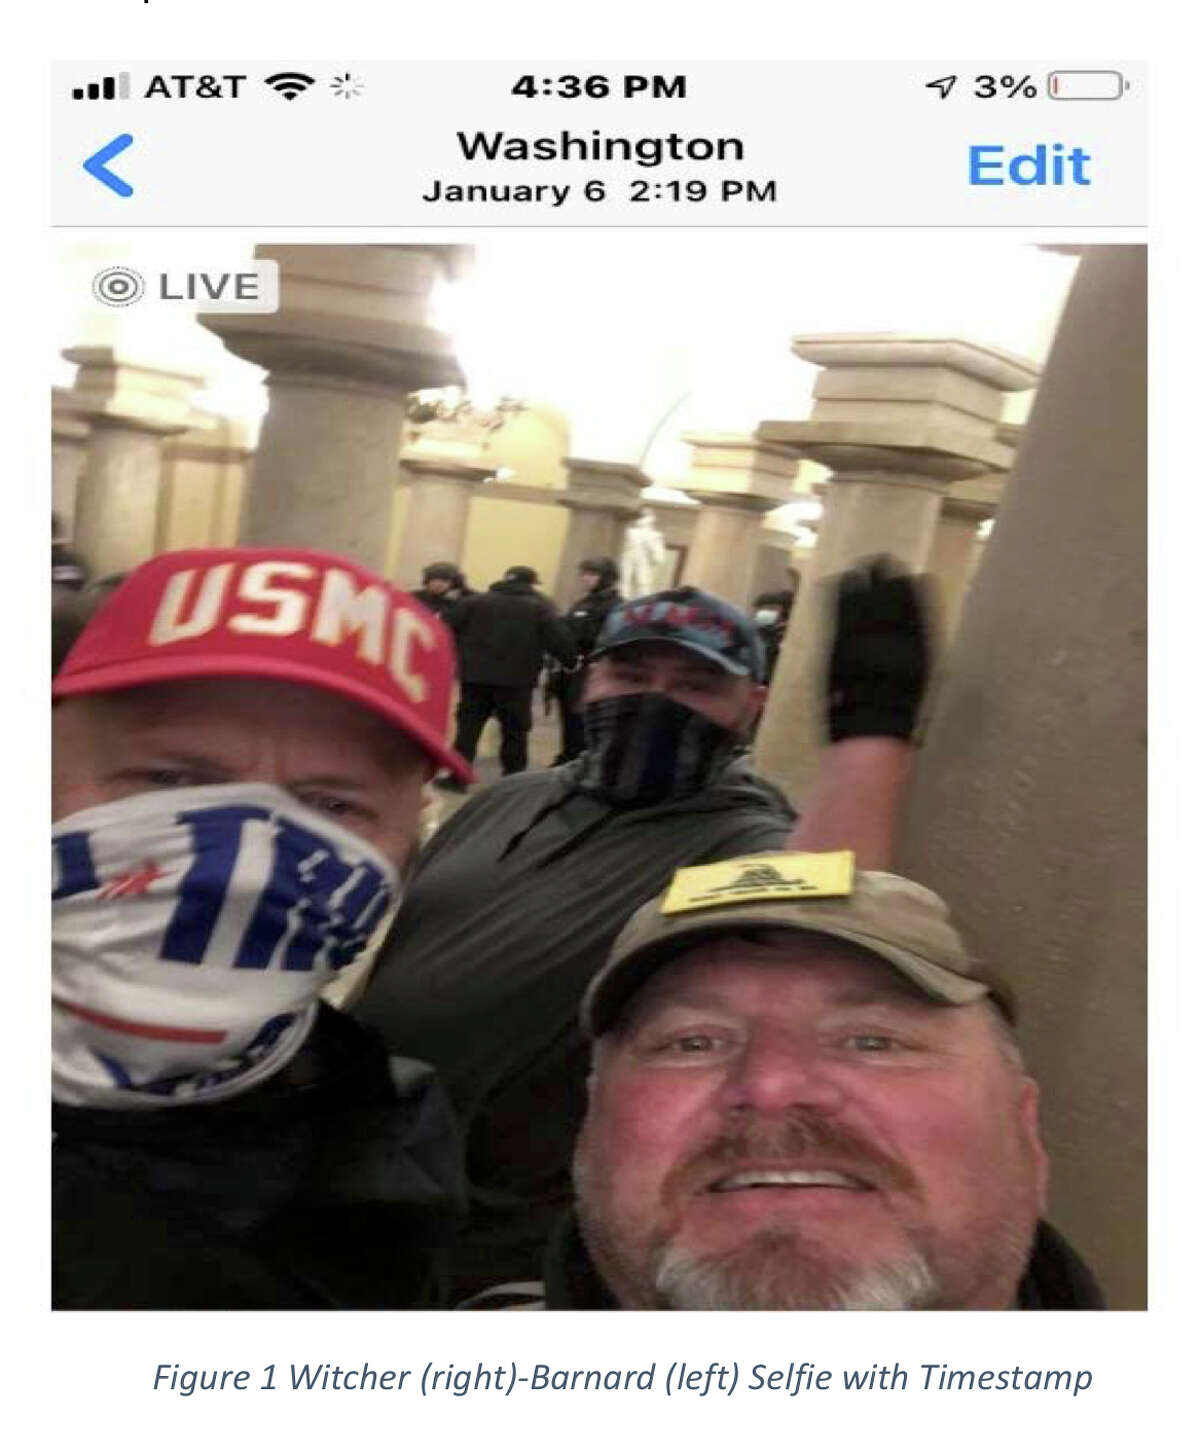 Central Texans Jeffrey Witcher, right, and Richard Barnard, left, pose for a selfie at 2:19 p.m. from inside the Capitol Building, according to charging documents.